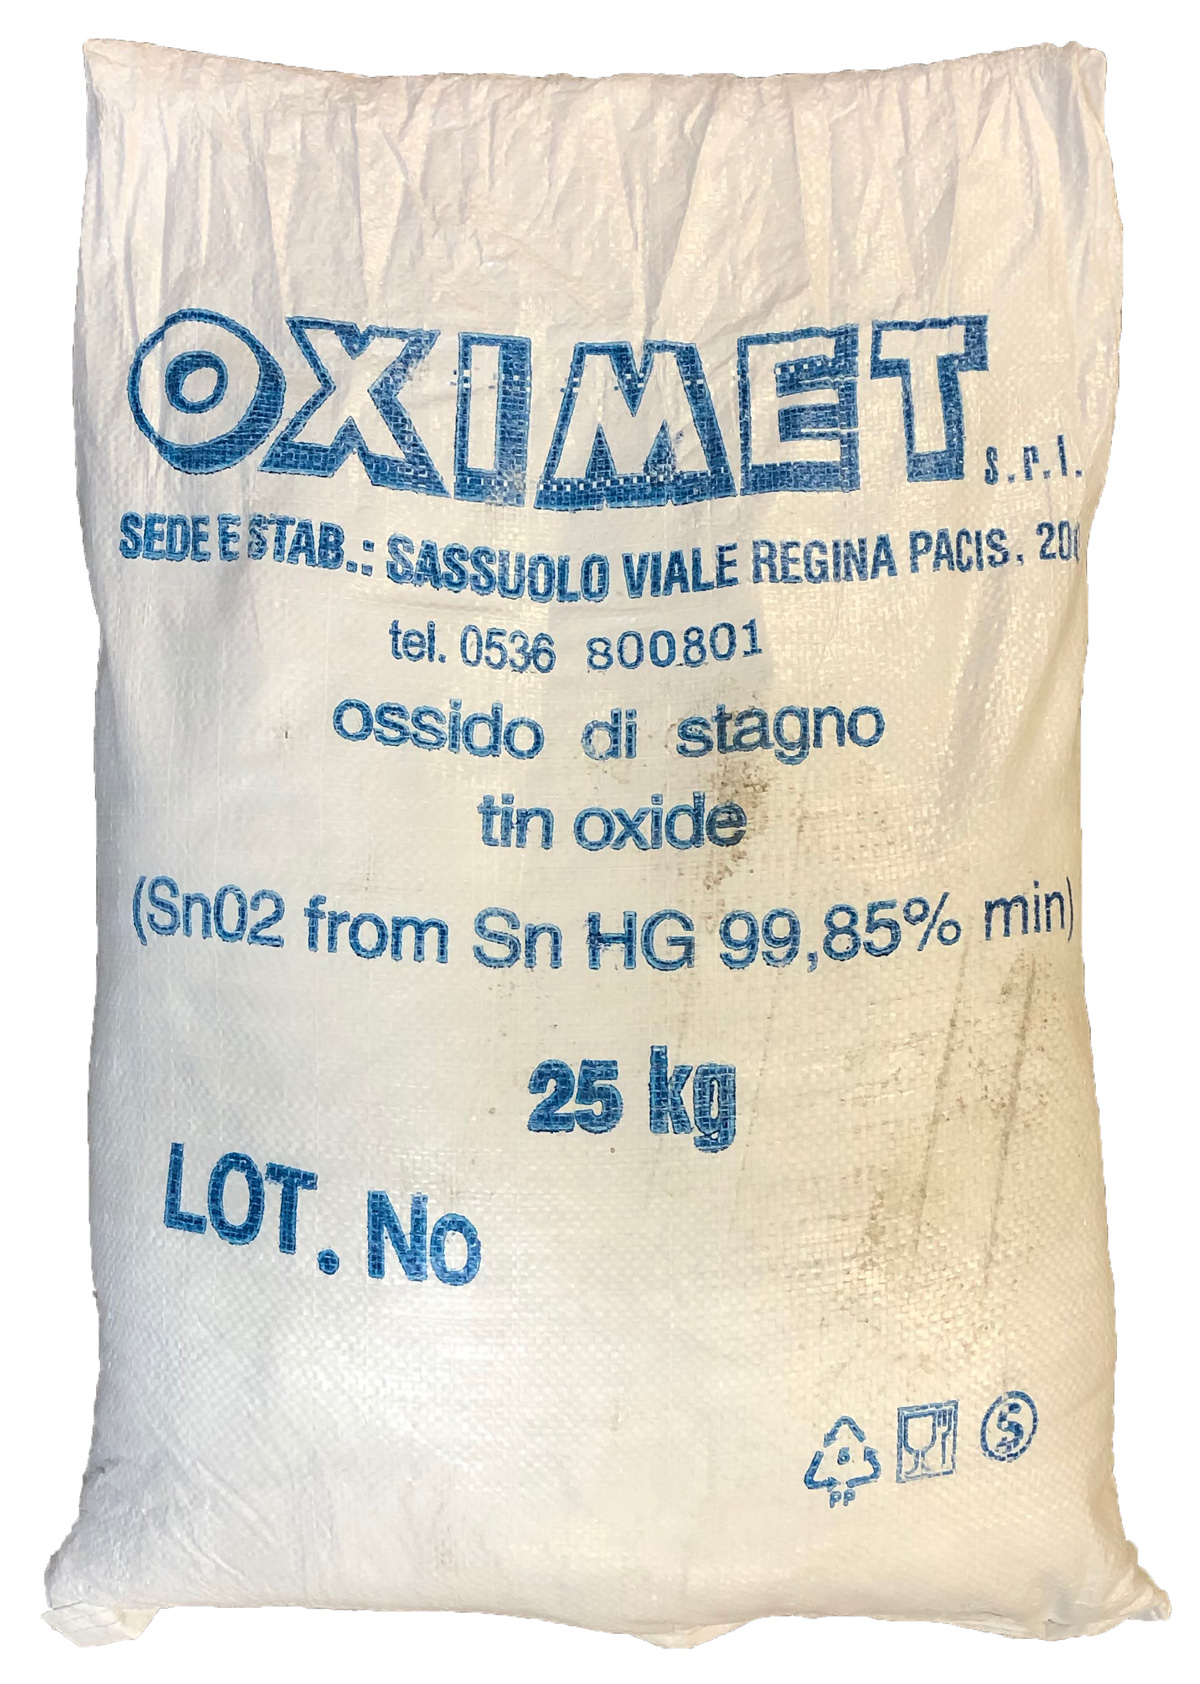 An original container bag of Tin Oxide